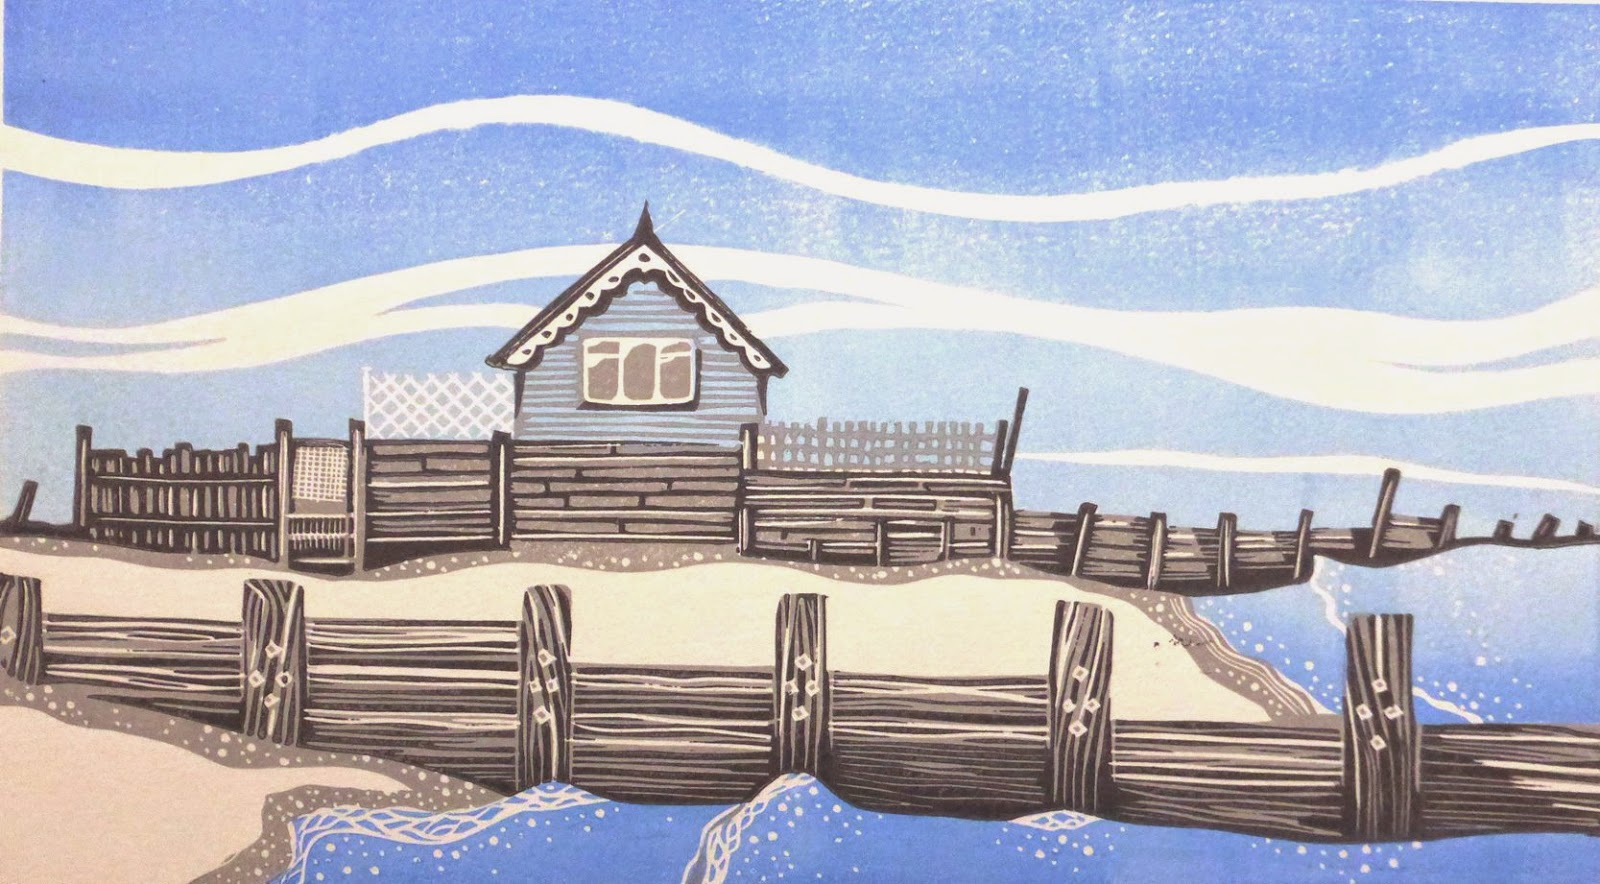 https://www.etsy.com/uk/listing/198714738/original-lino-print-the-blue-house-at?